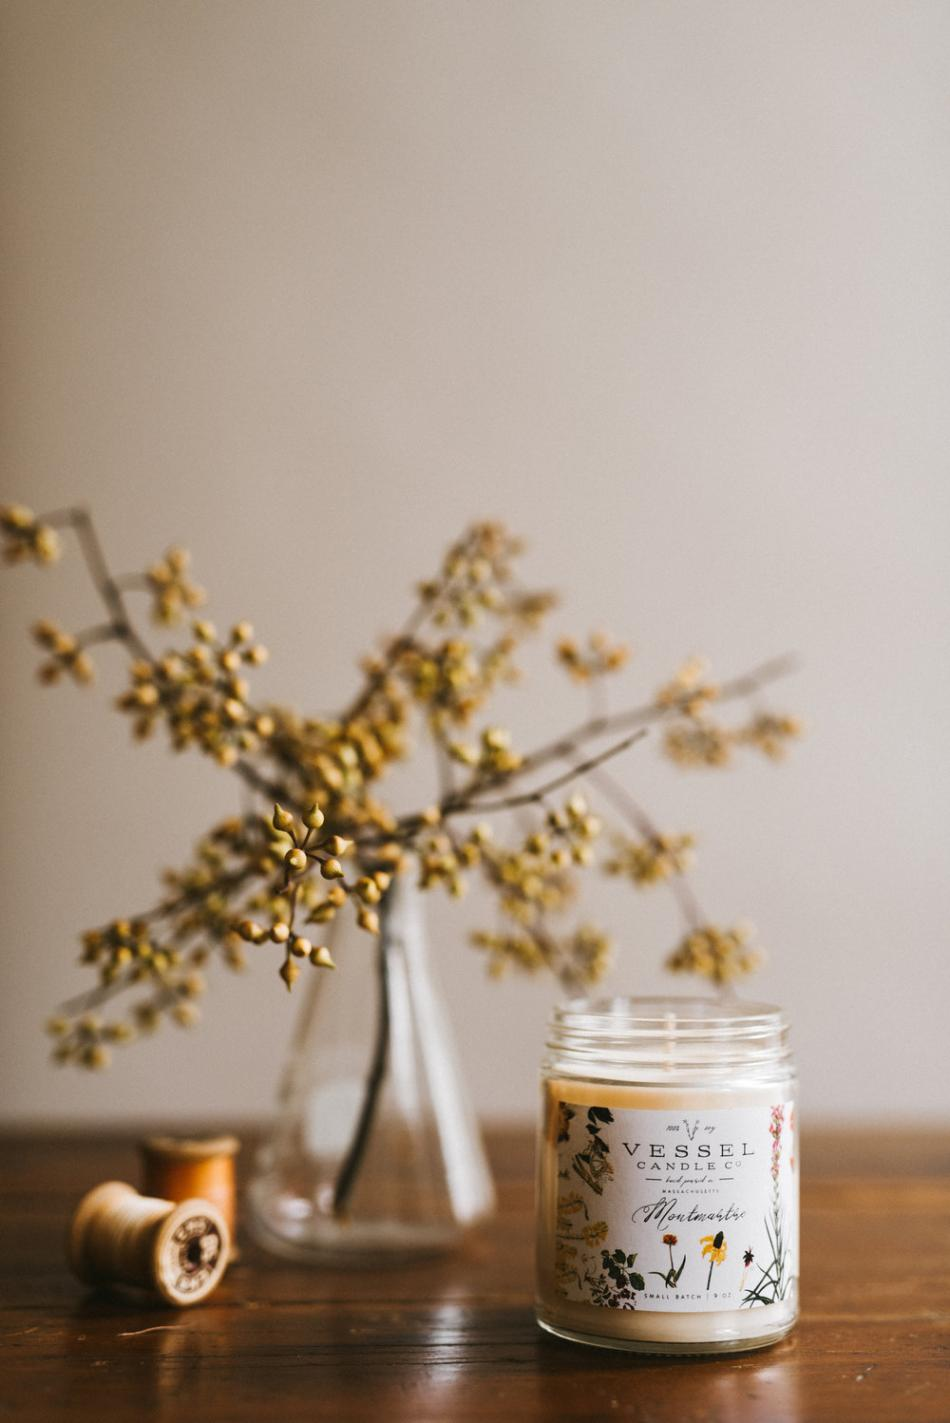 Vessel Candle Co